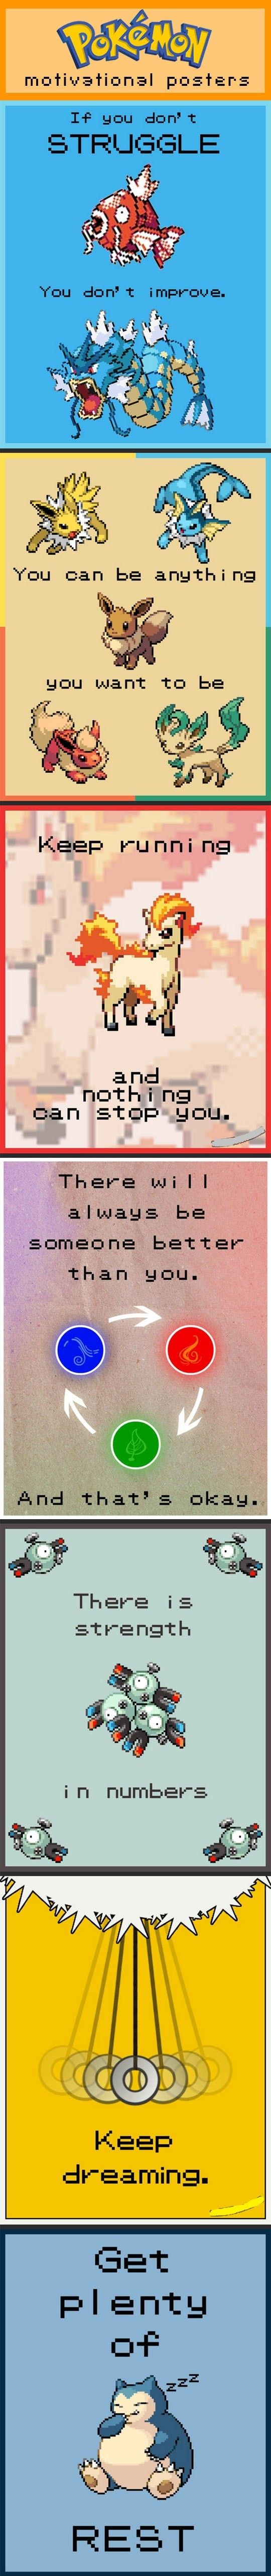 Motivational Pokémon Posters… - One Stop Humor: Funny Pictures and Videos!